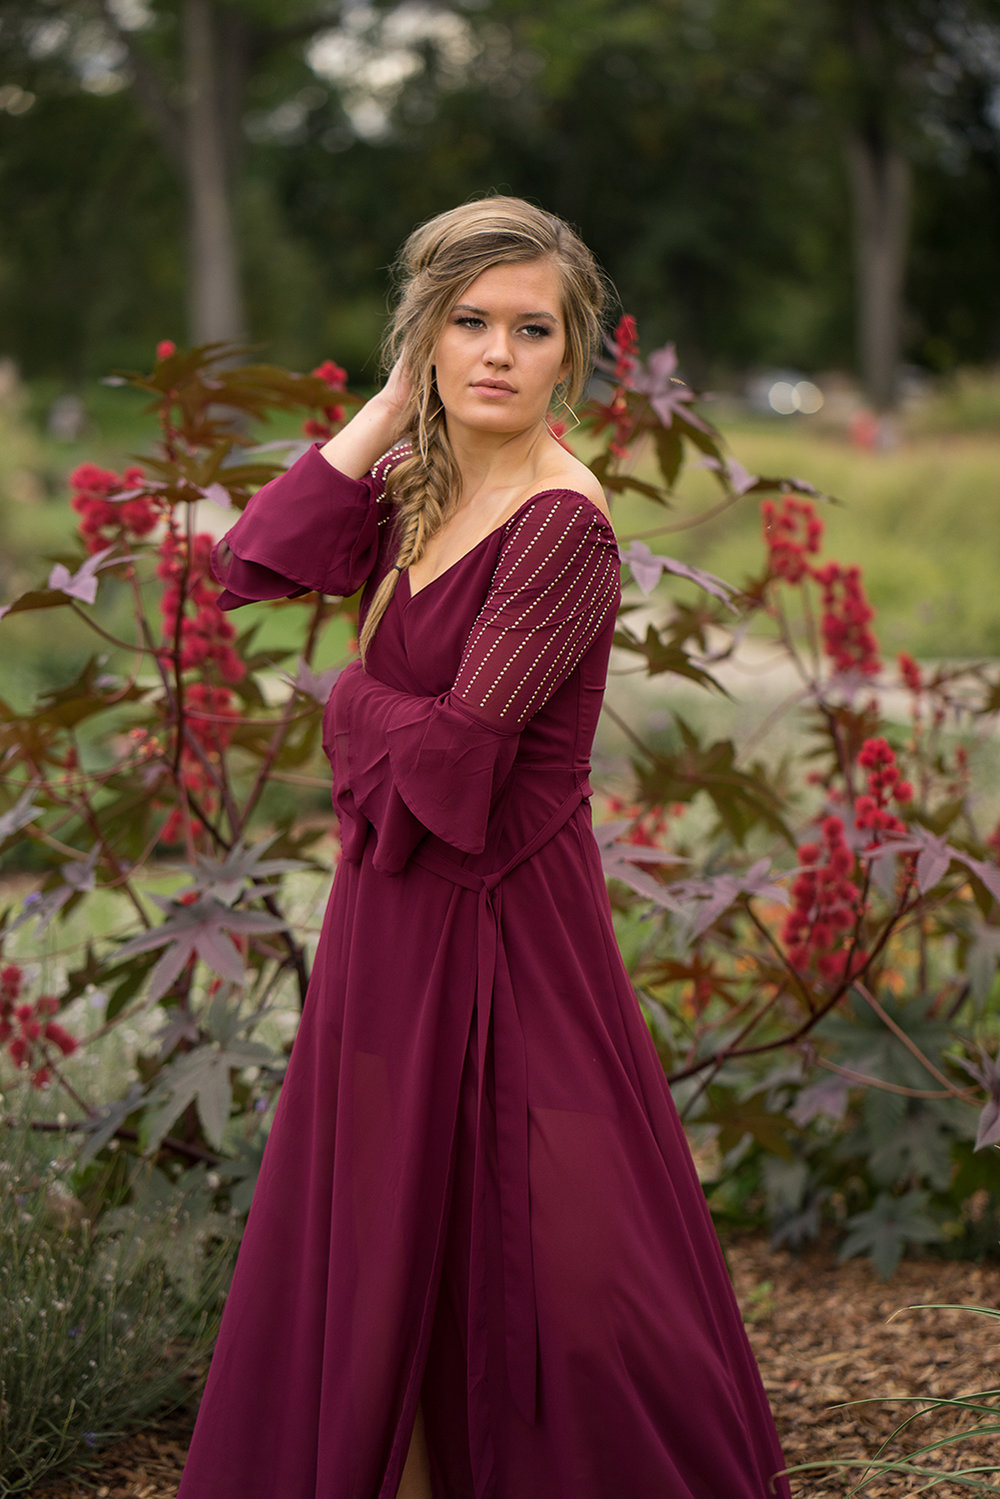 teen girl in garden - Danville senior portrait photographer